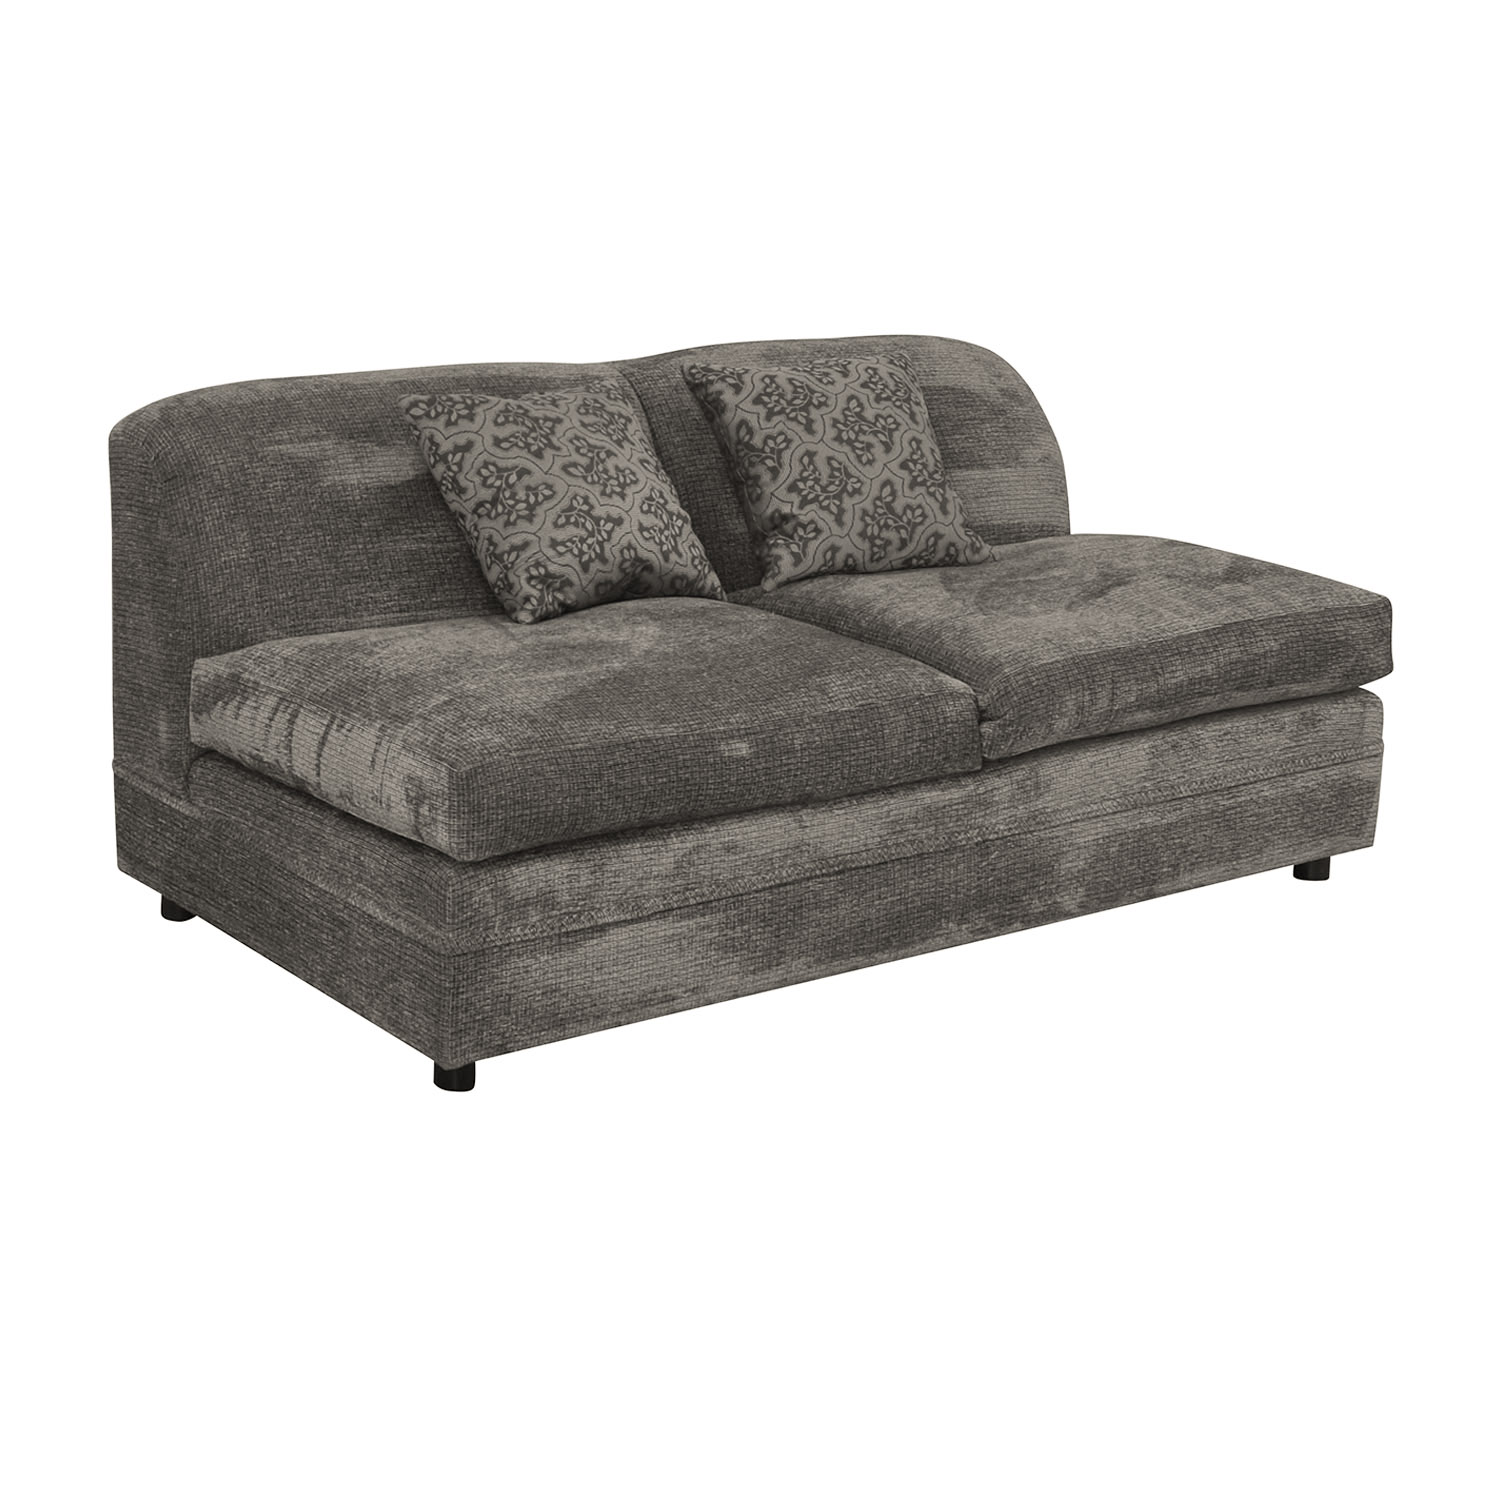 Todd Hase Todd Hase Grey Armless Loveseat coupon